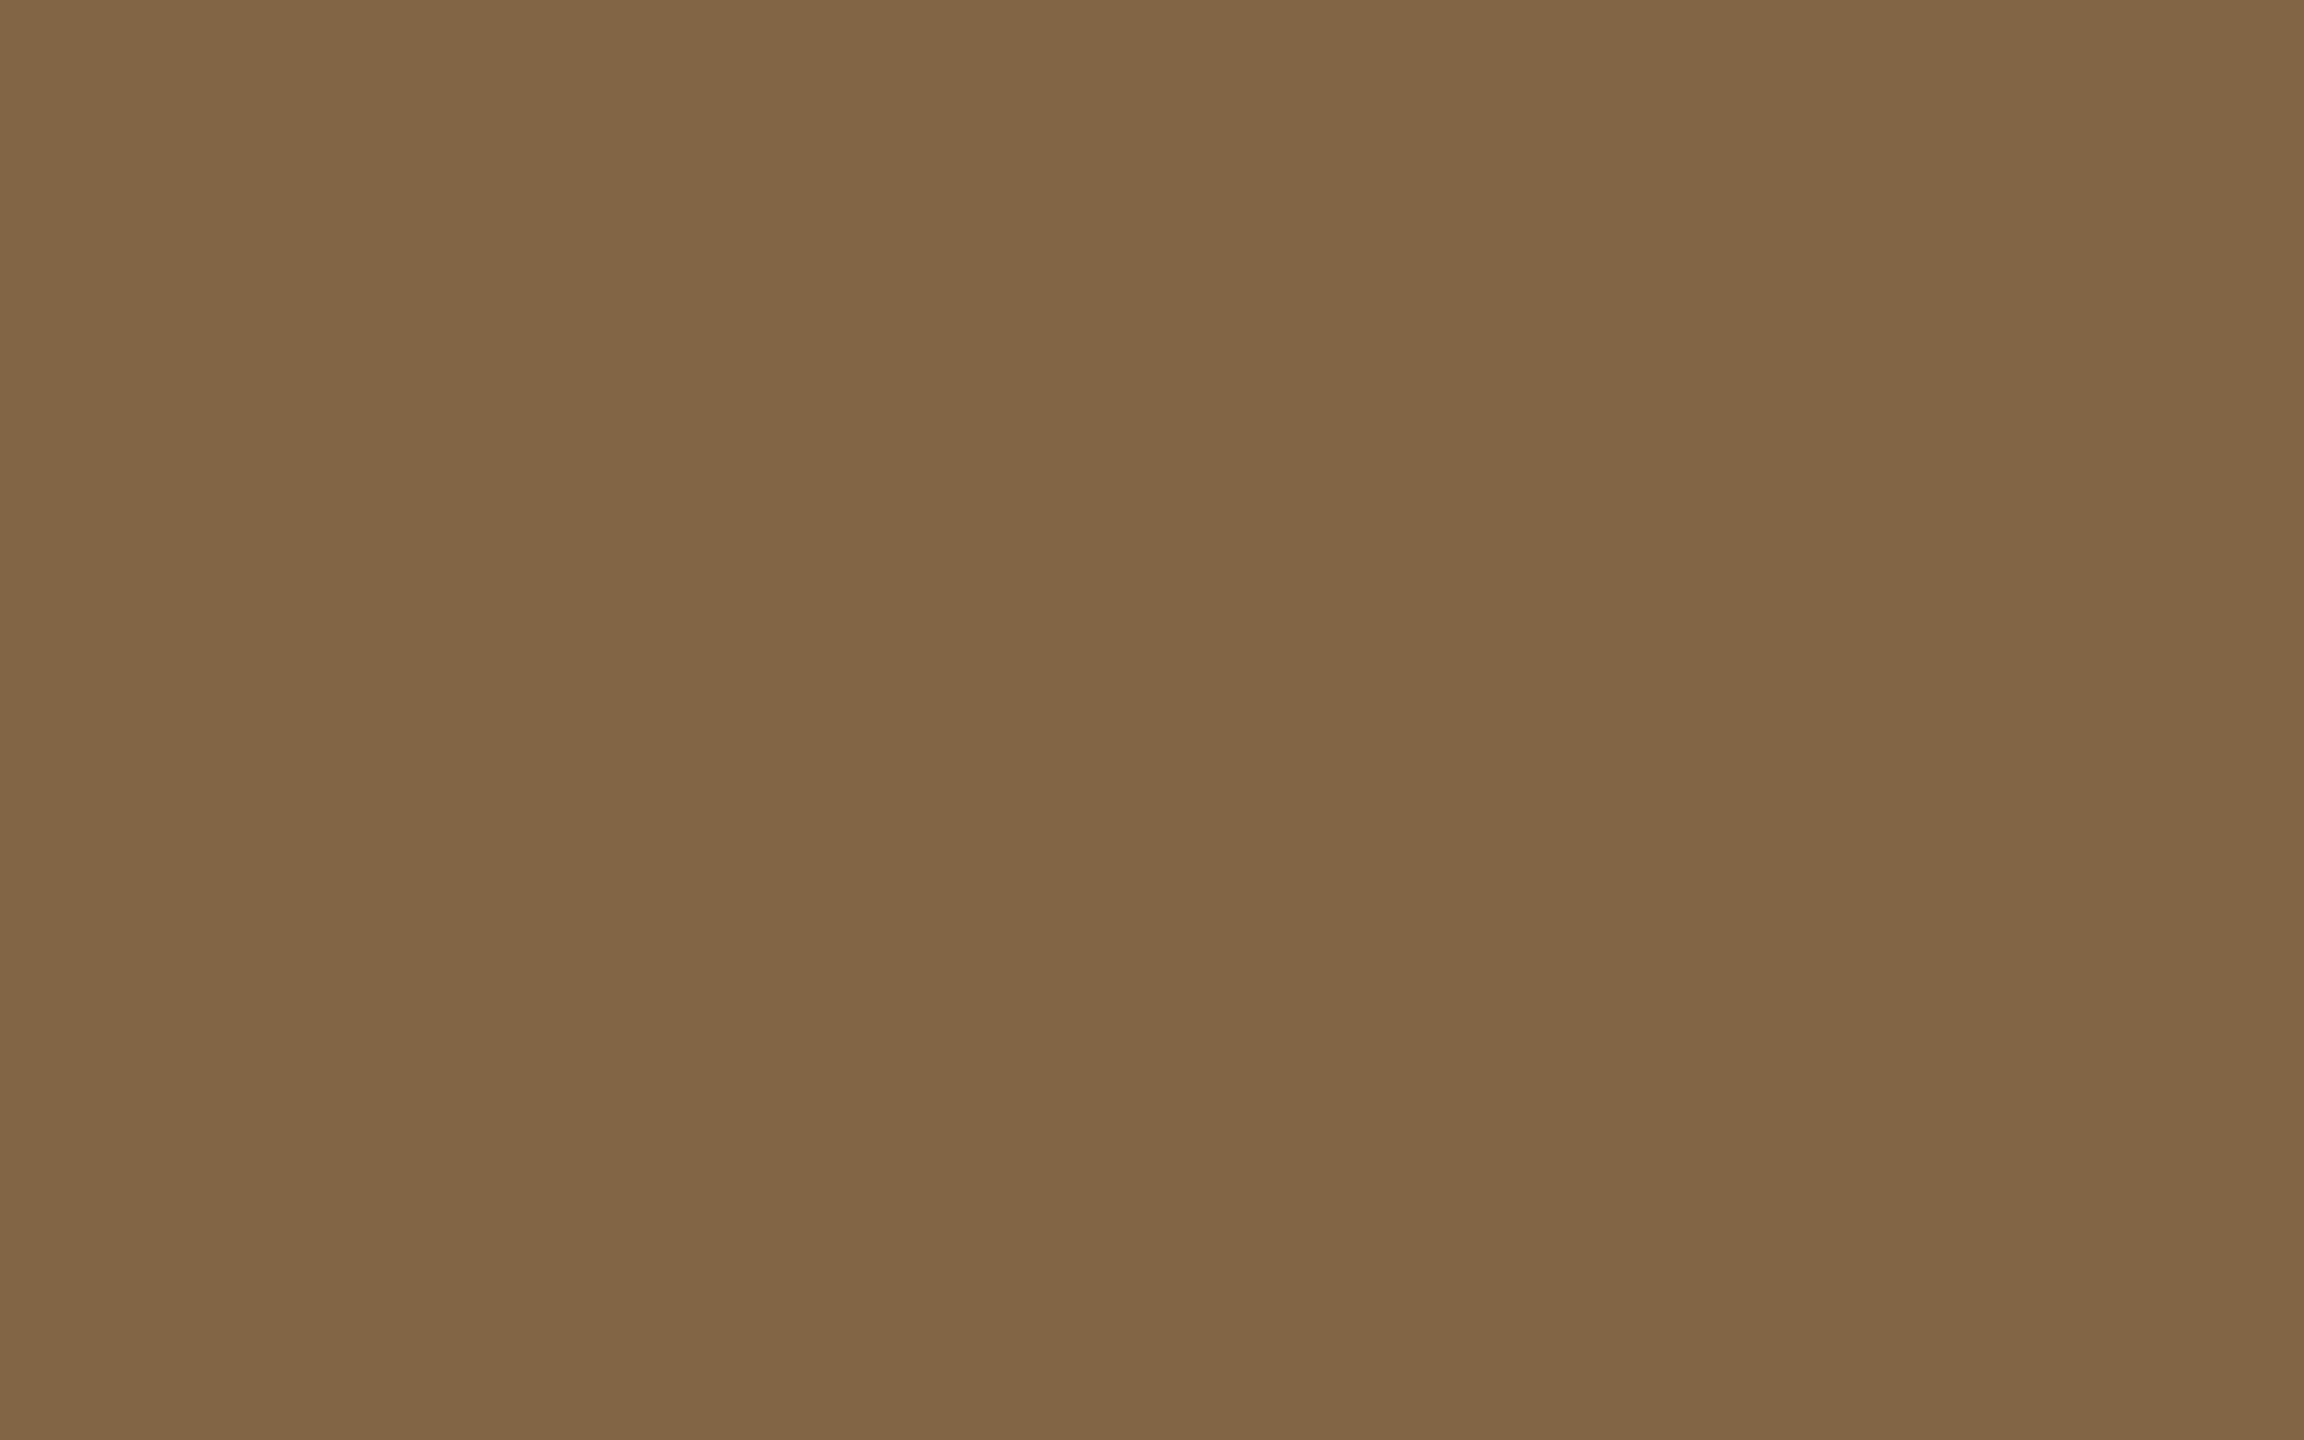 2304x1440 Raw Umber Solid Color Background